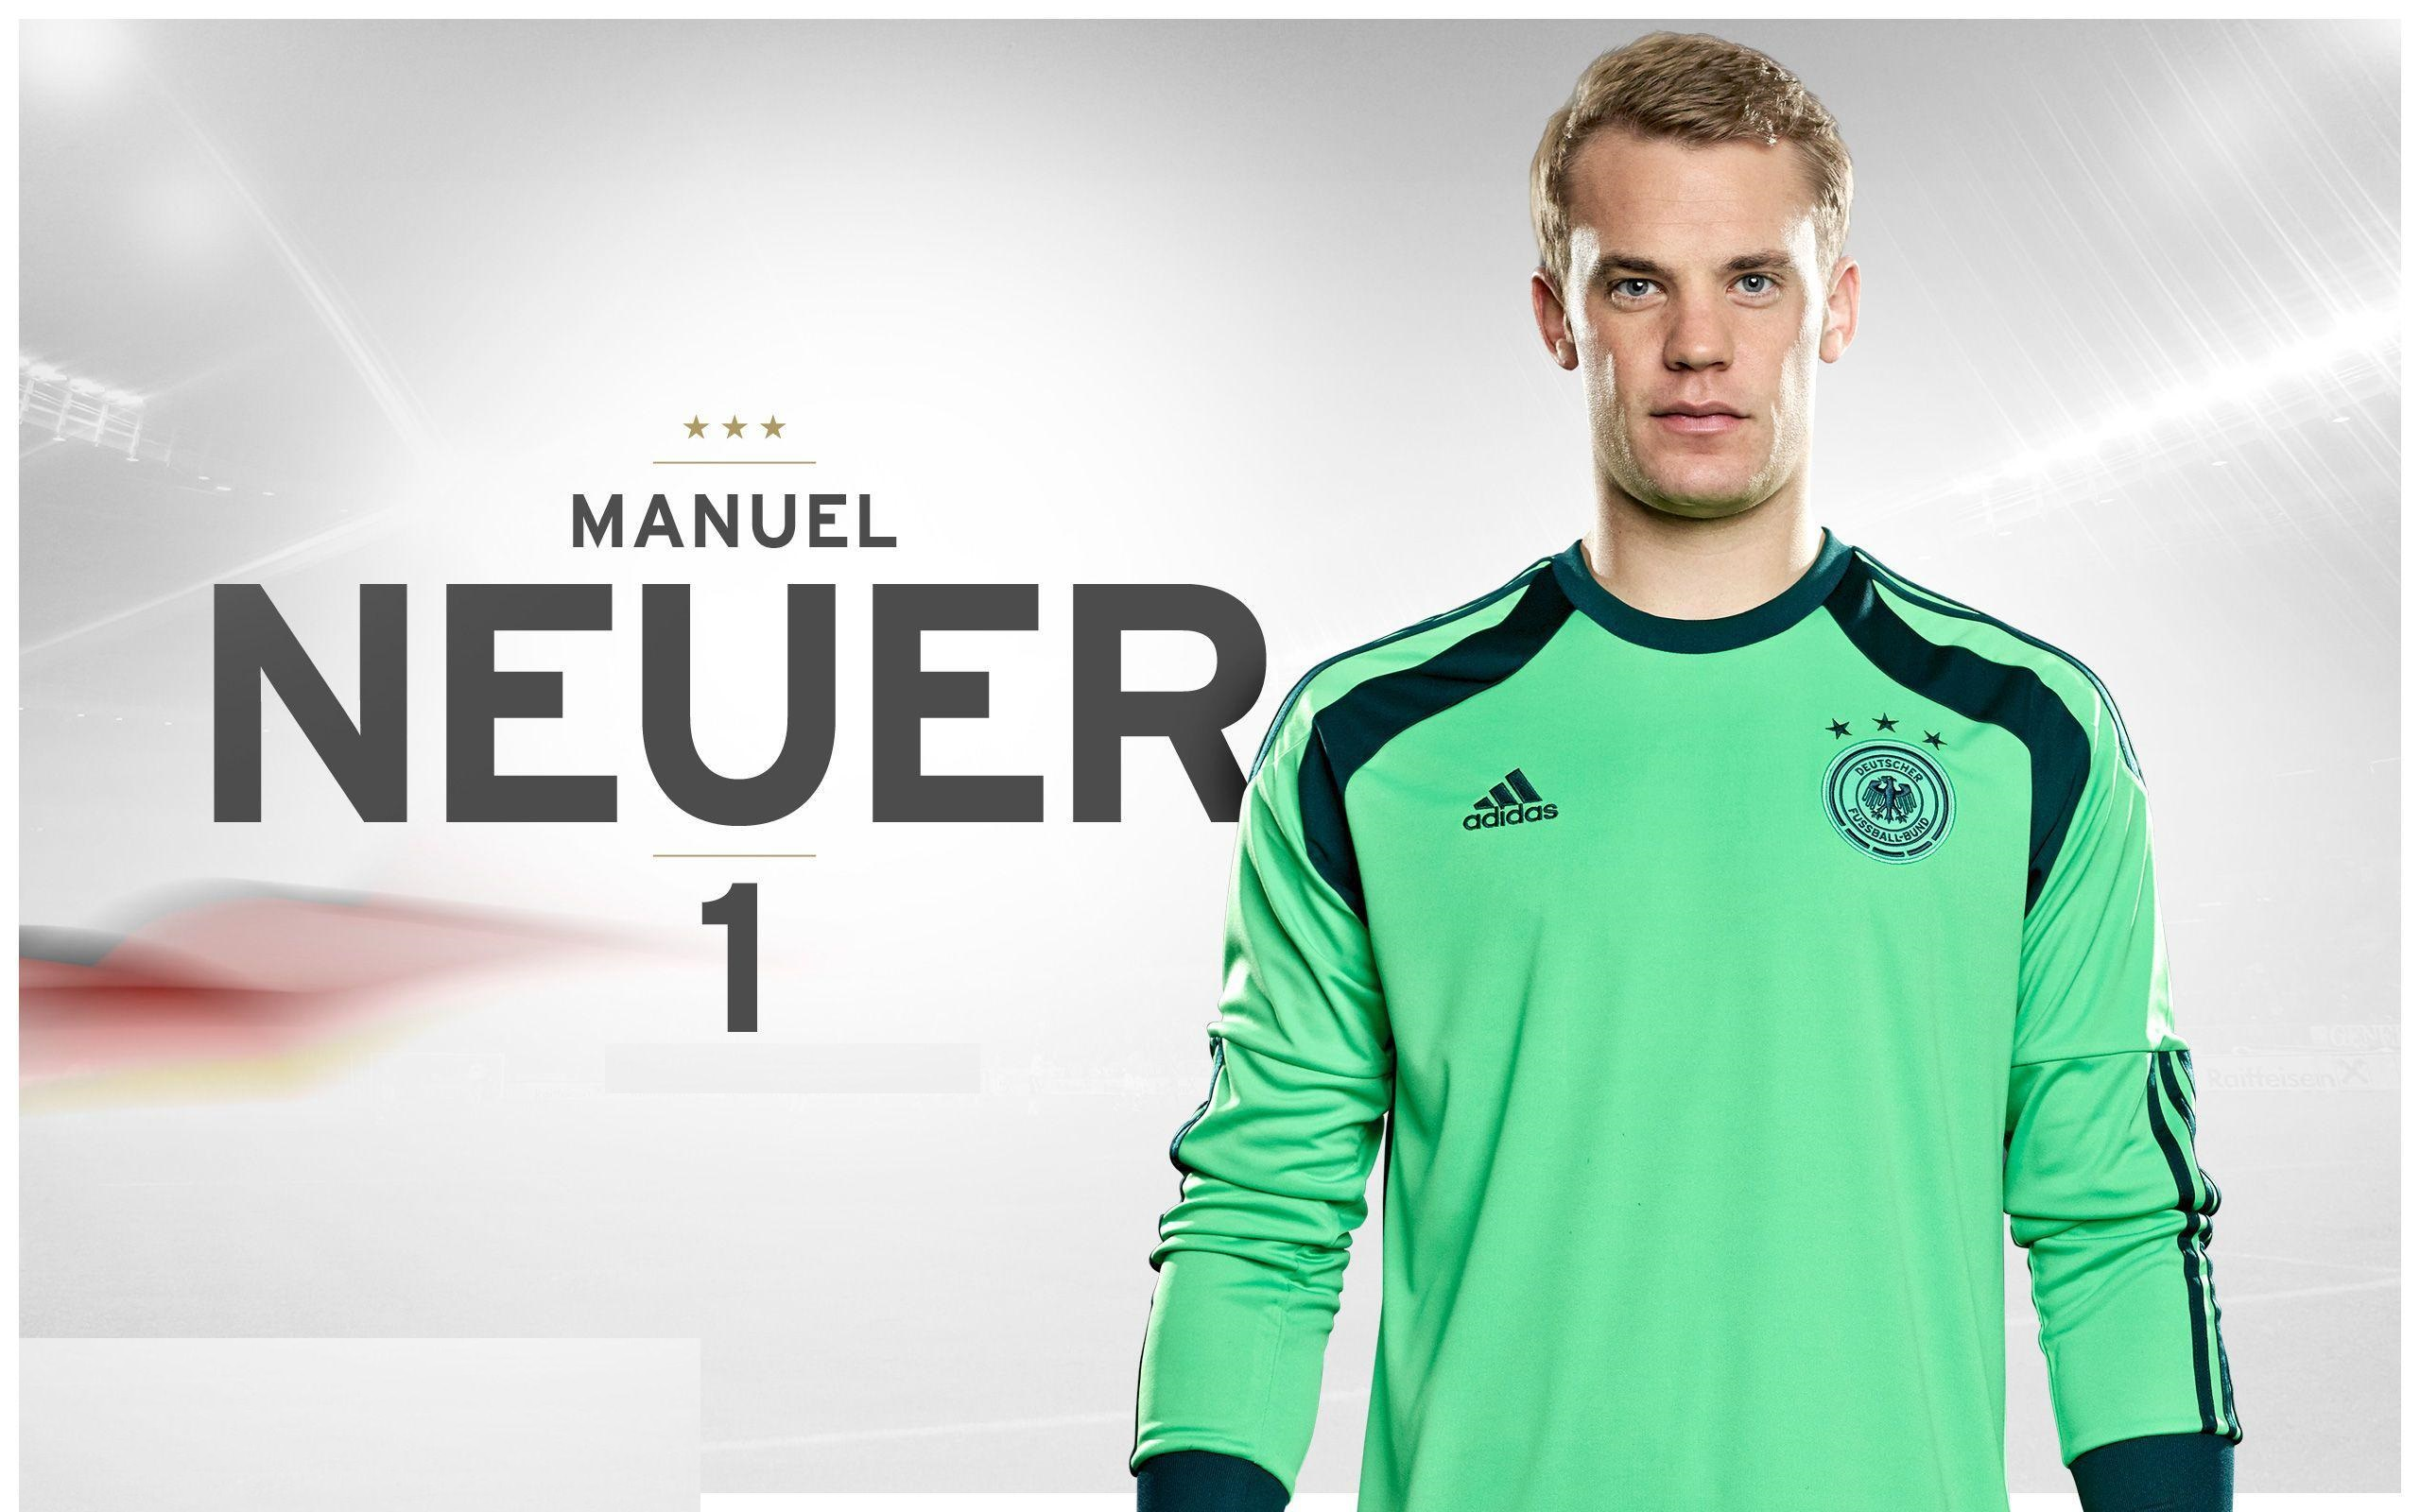 Cute Cartoon Hd Wallpapers For Mobile Manuel Neuer Wallpaper